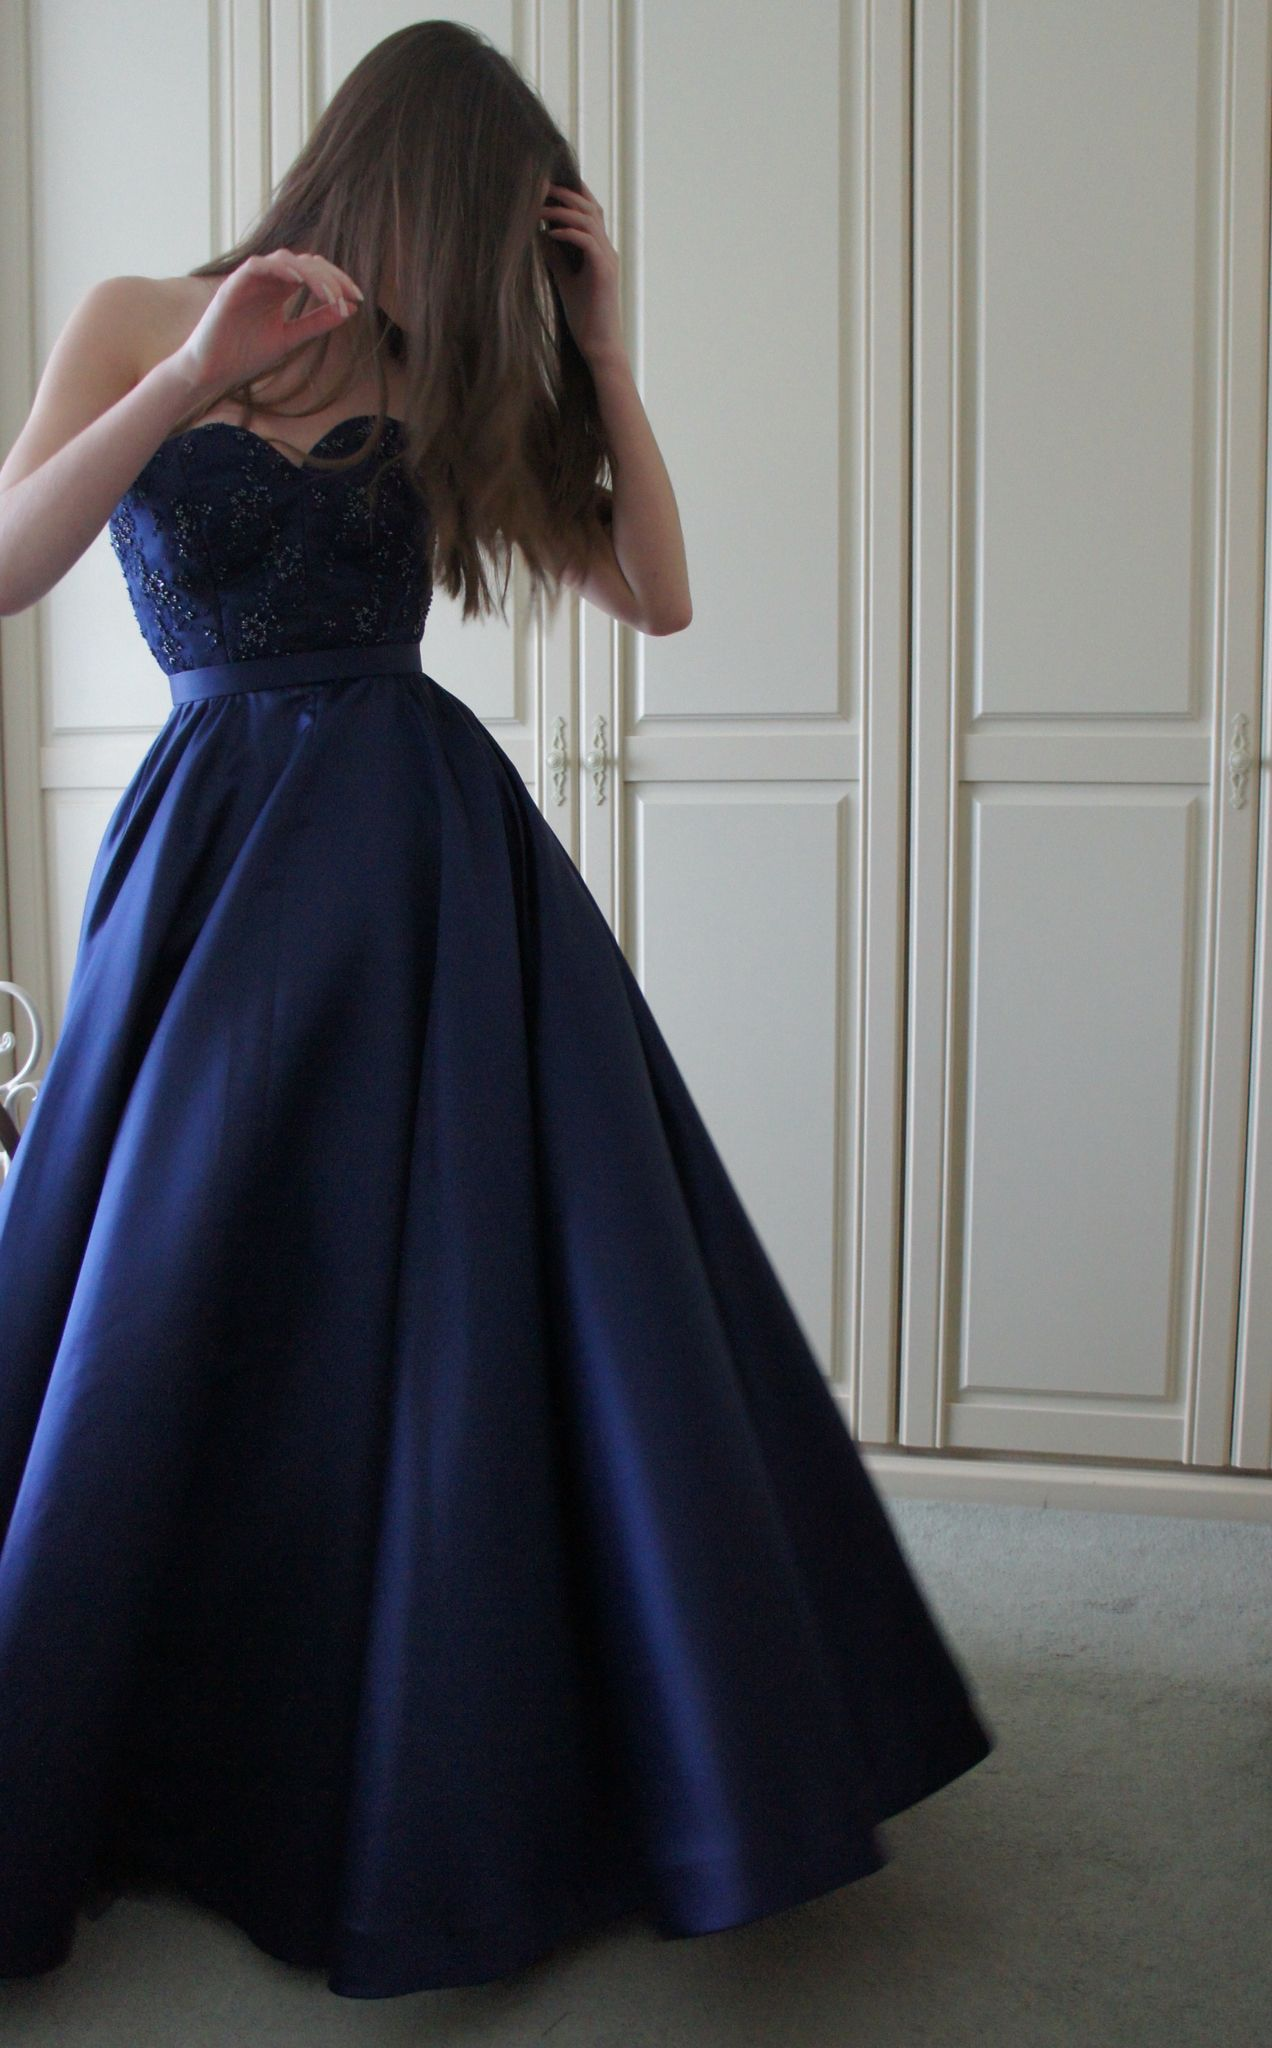 1950s Style Prom Dress Made For A Client Beaded Bodice With French Navy Blue Satin Circle Skirt Corseted Underdr Fancy Dresses Fancy Frocks Navy Prom Dresses [ 2048 x 1272 Pixel ]